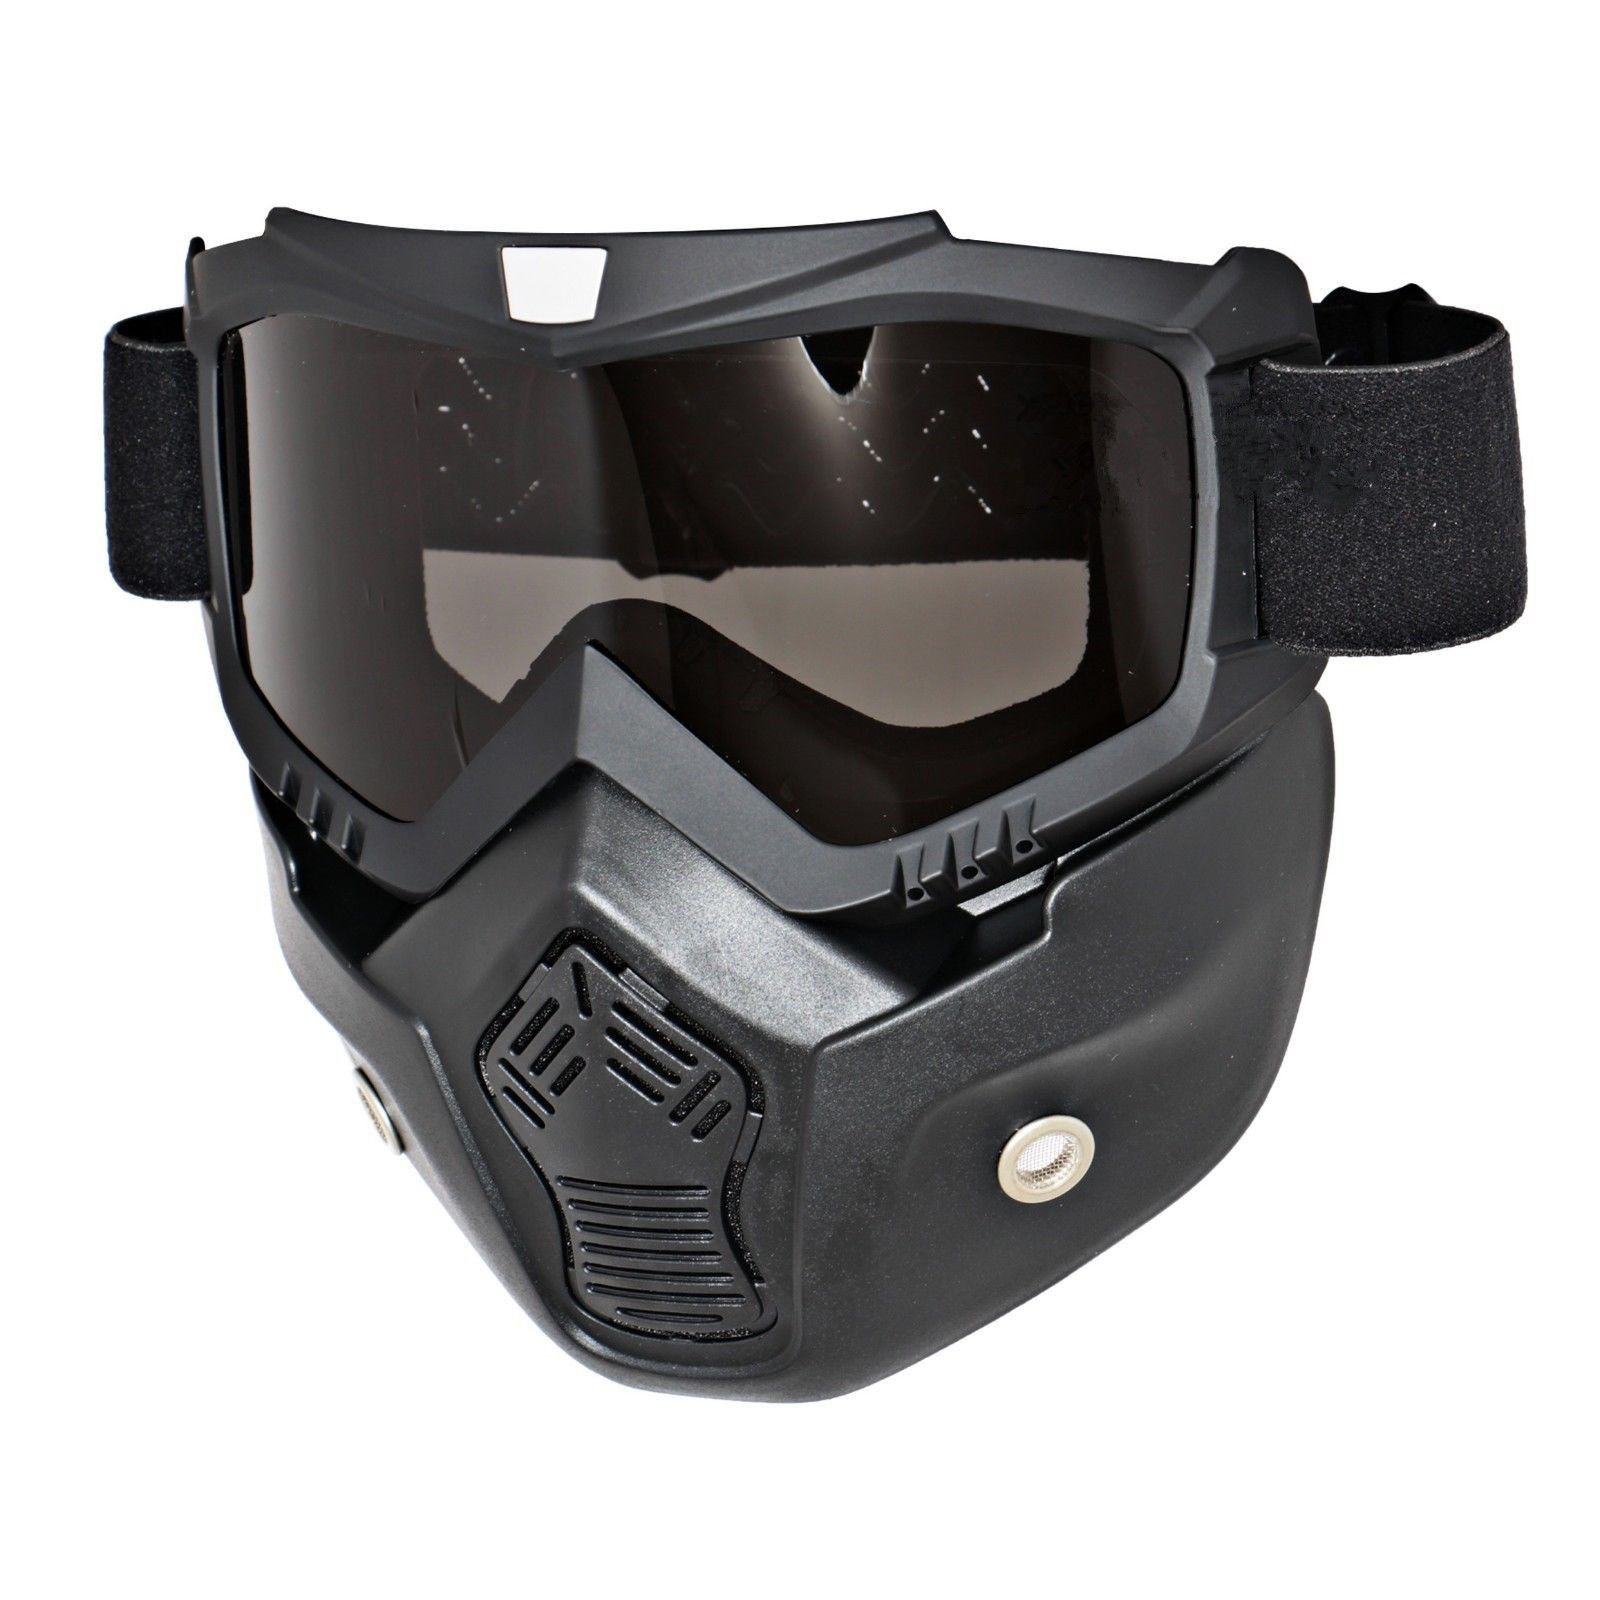 Triclicks Modular Motorcycle Riding Helmet Open Face Mask Shield Goggles Detachable by Triclicks (Image #1)